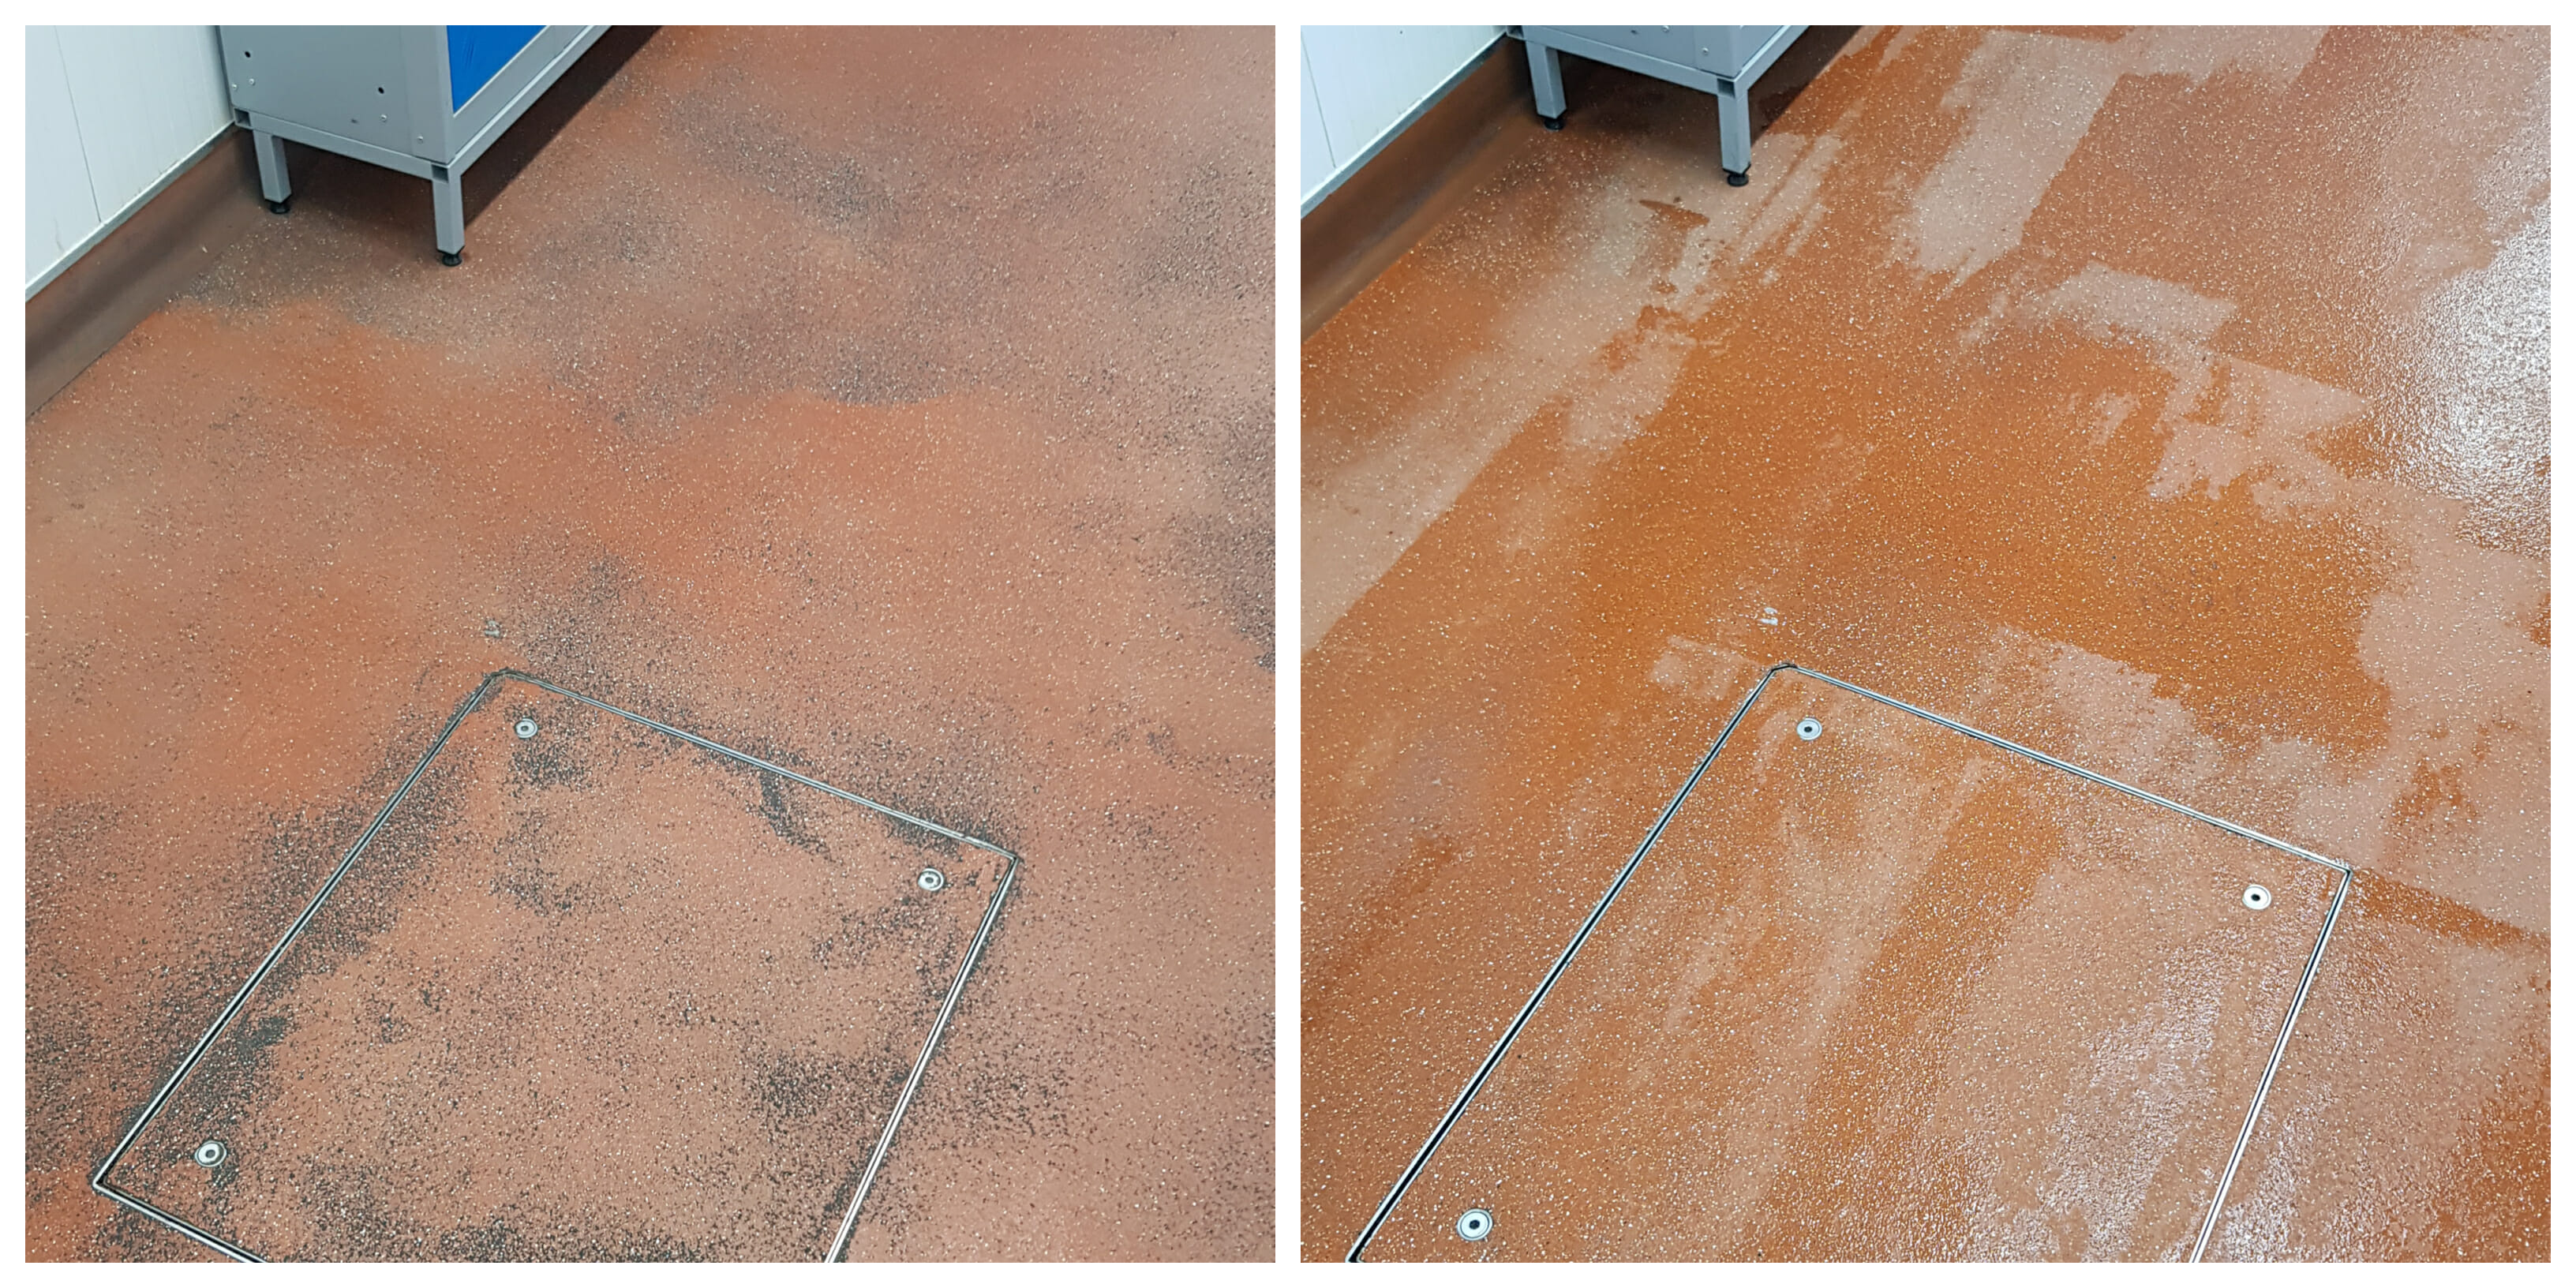 Cp Foods floor cleaning before and after